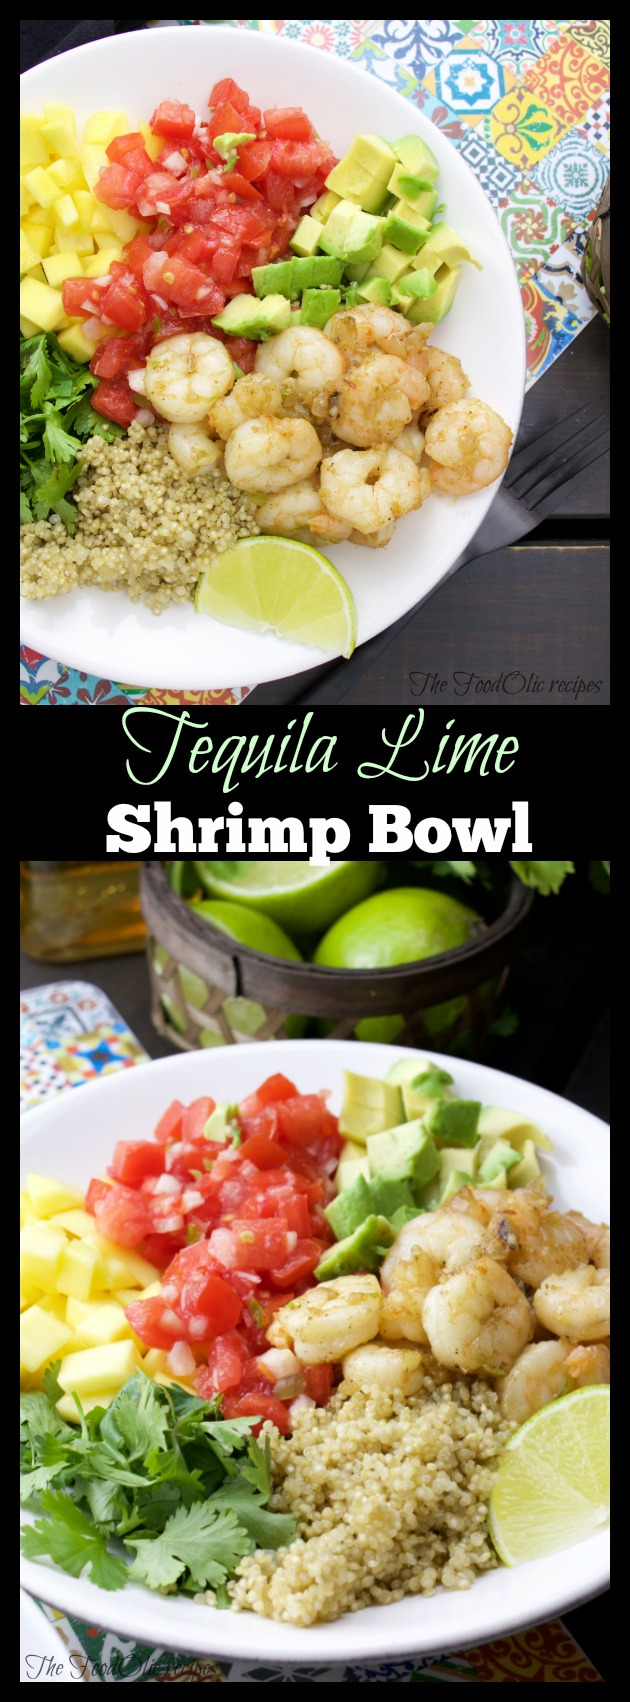 Tequila lime shrimp bowl with avocado, pico de gallo, avocado, quinoa and cilantro